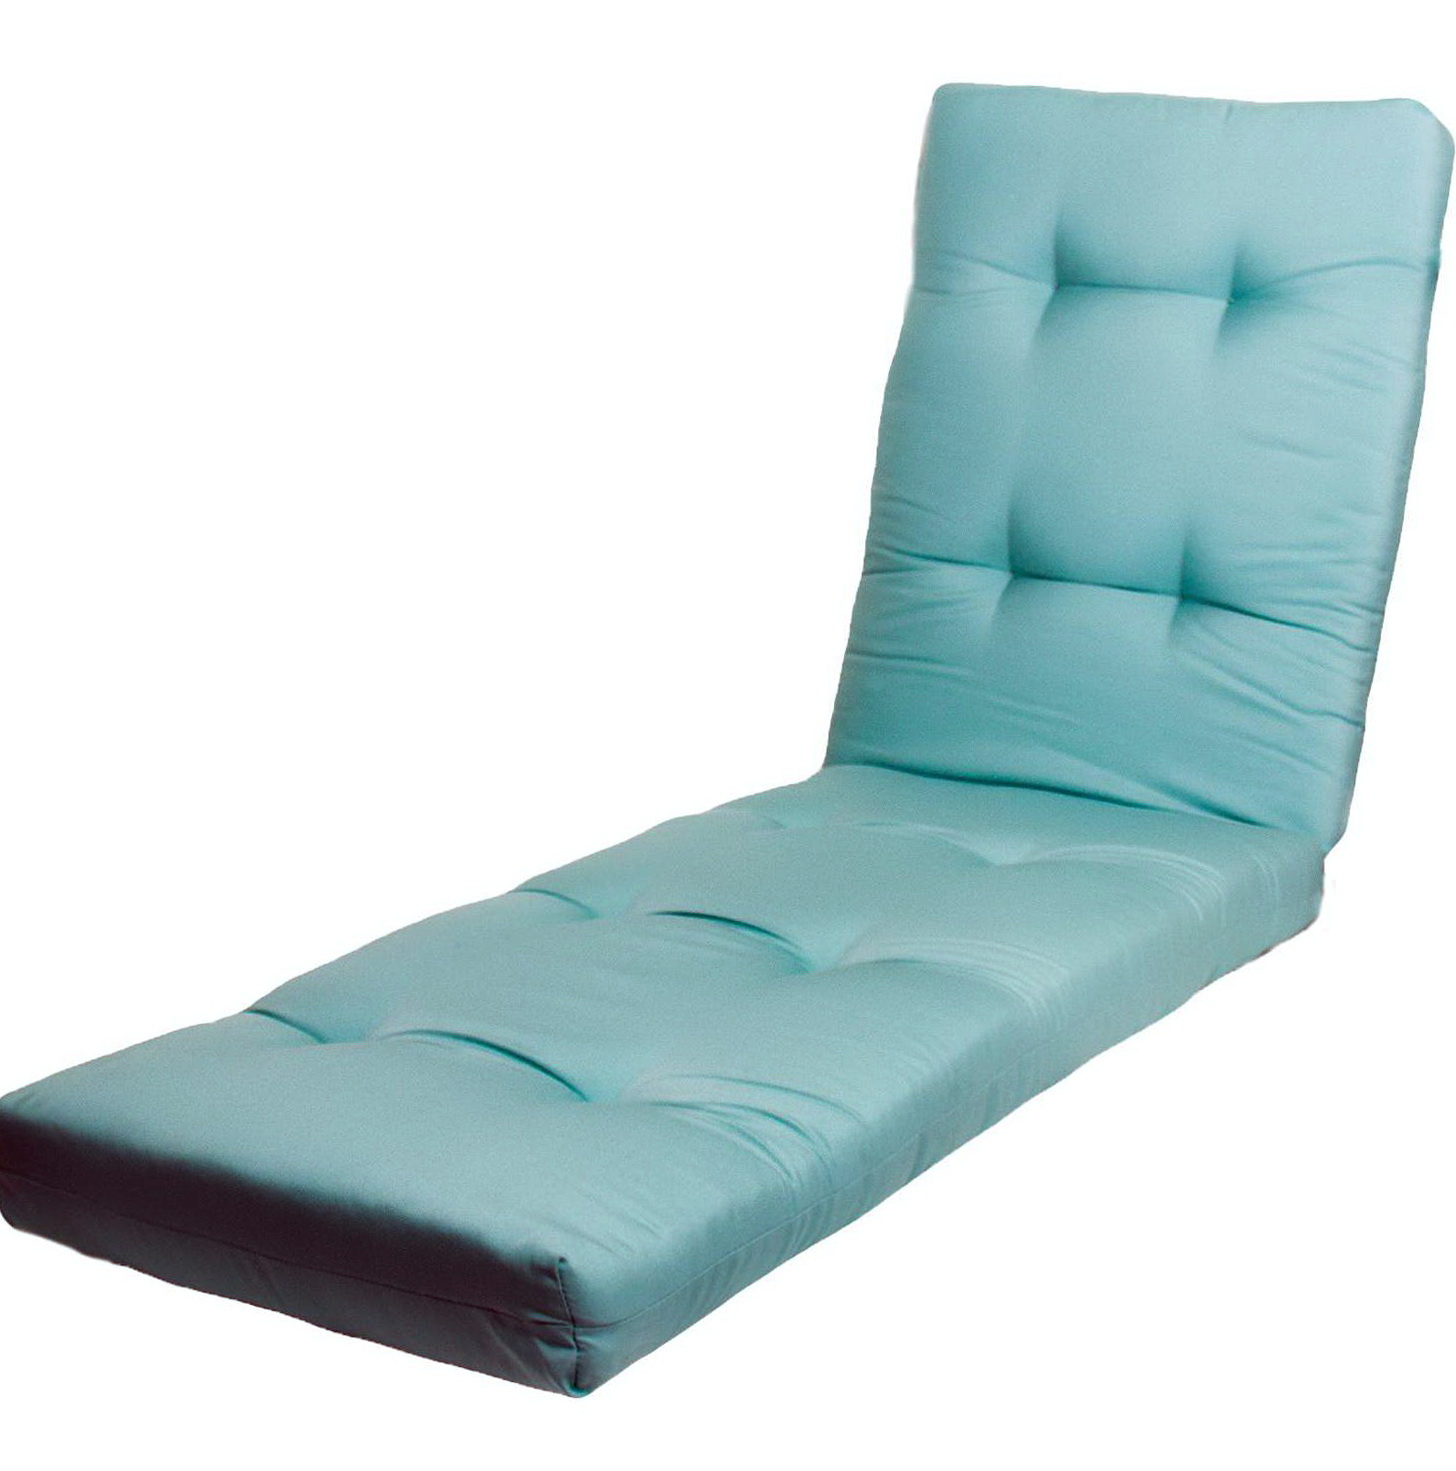 Unique 30 chaise lounge chairs for sale for Chaise cushions sale